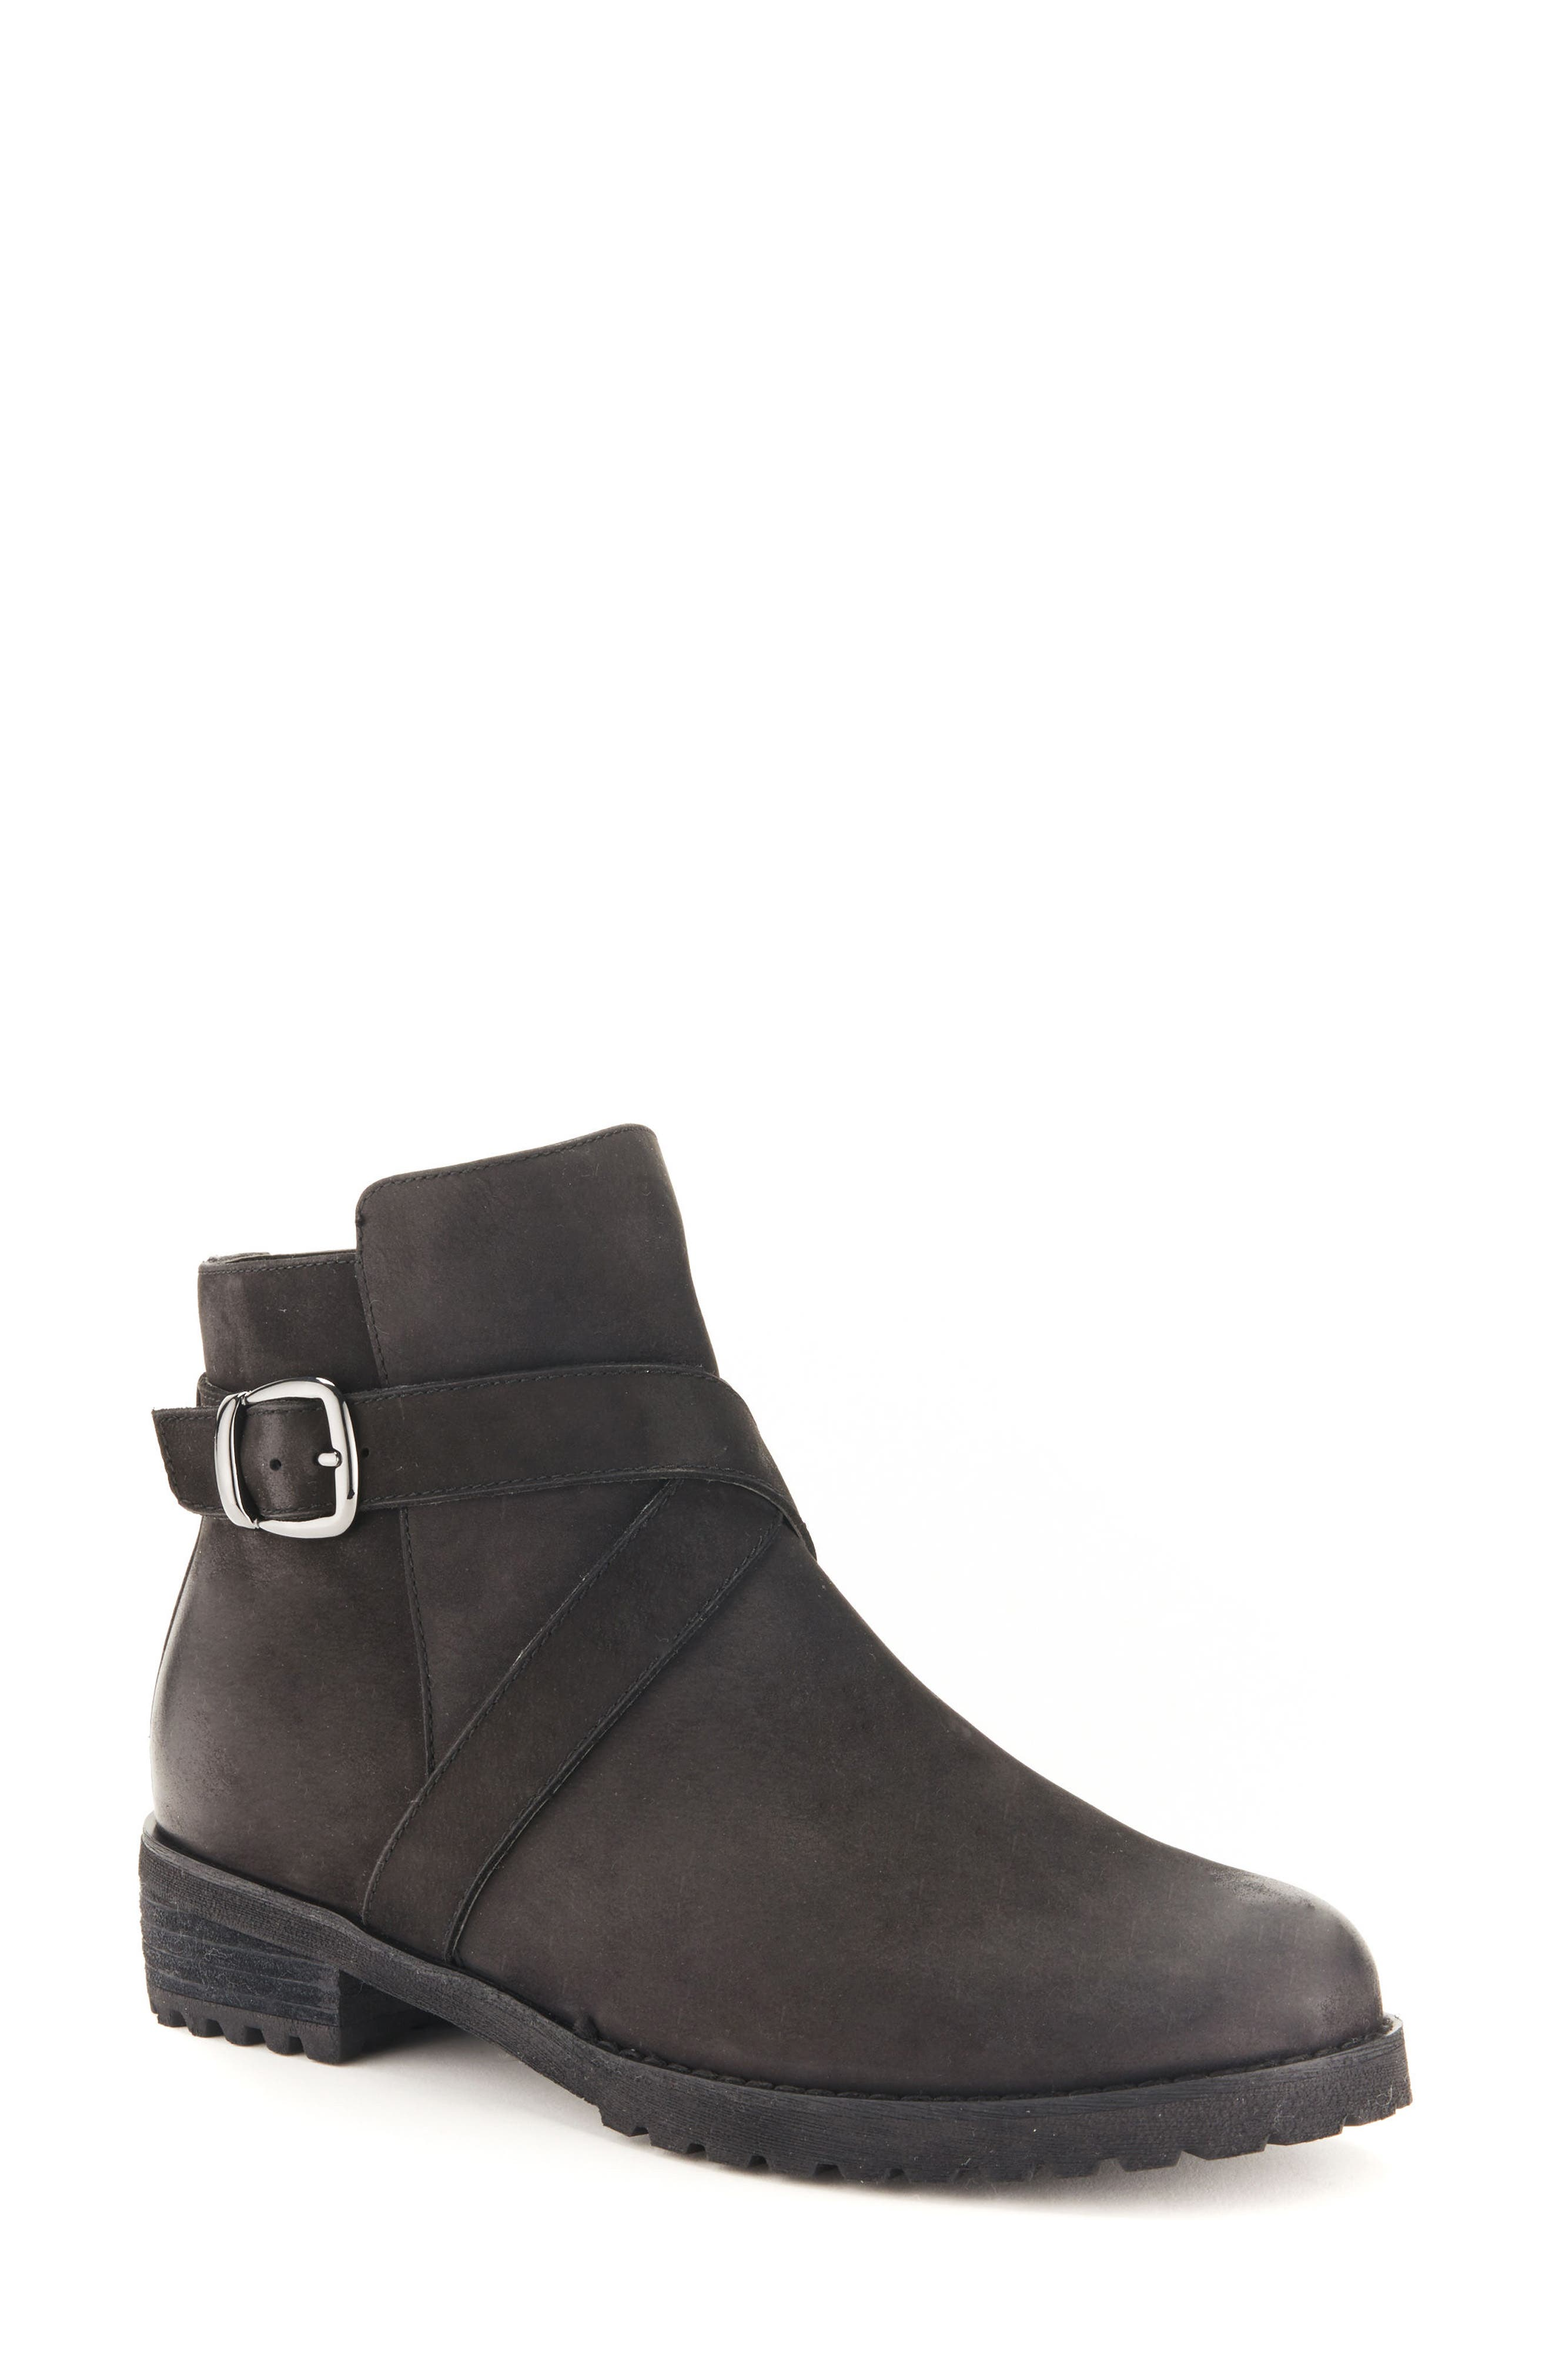 BLONDO Varta Waterproof Bootie, Main, color, BLACK NUBUCK LEATHER